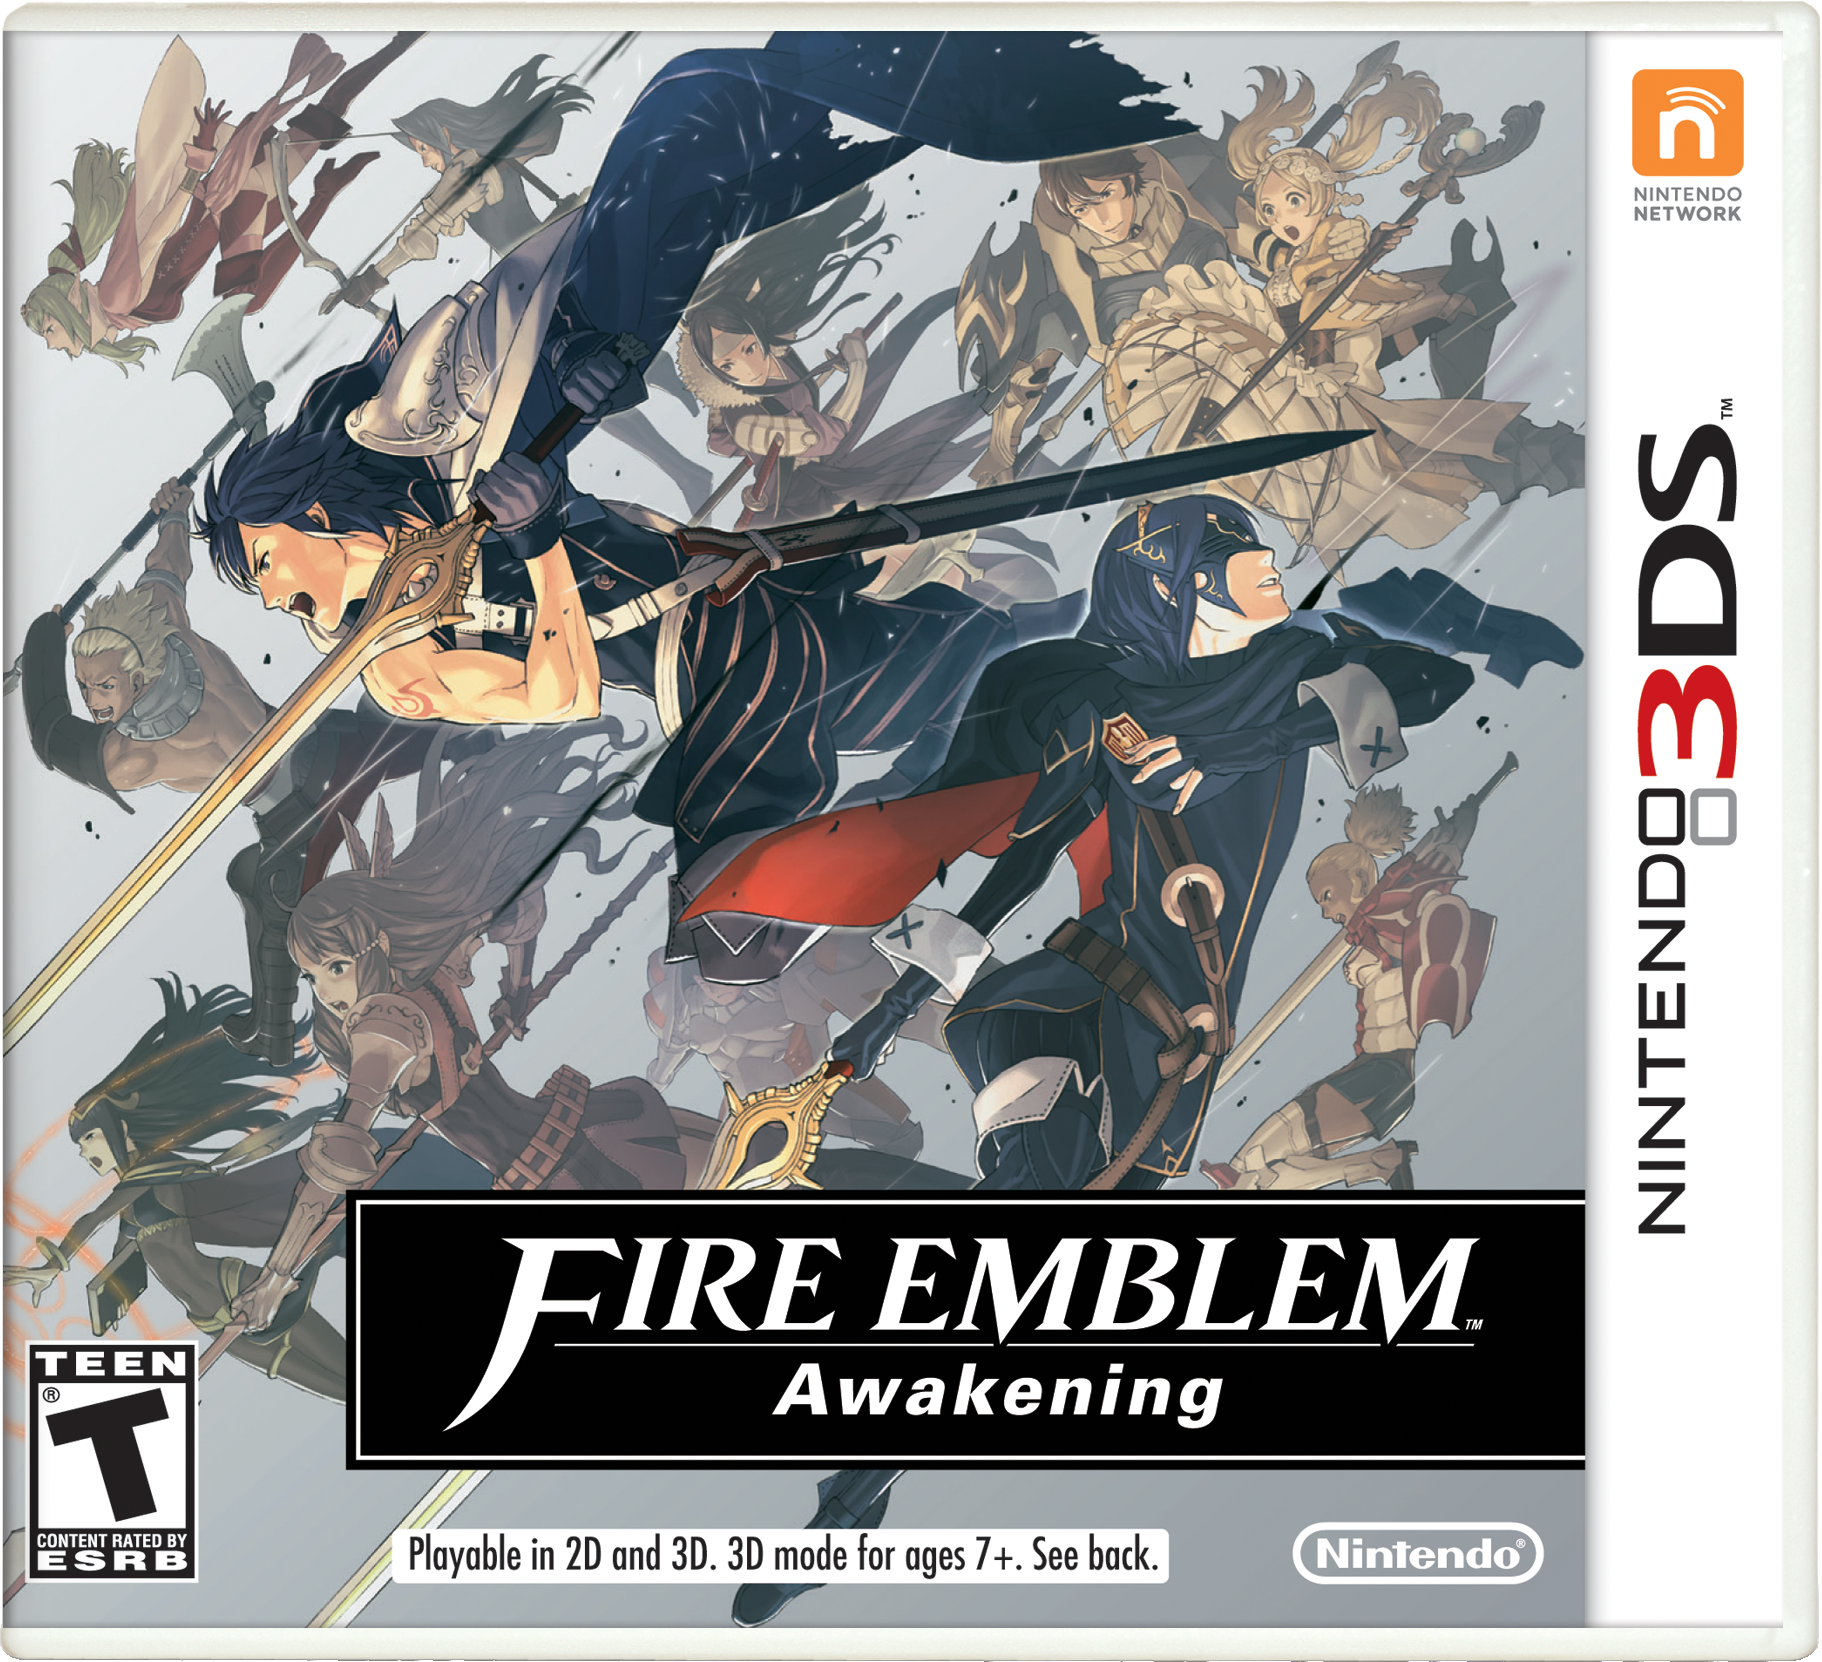 Fire Emblem: Awakening game art